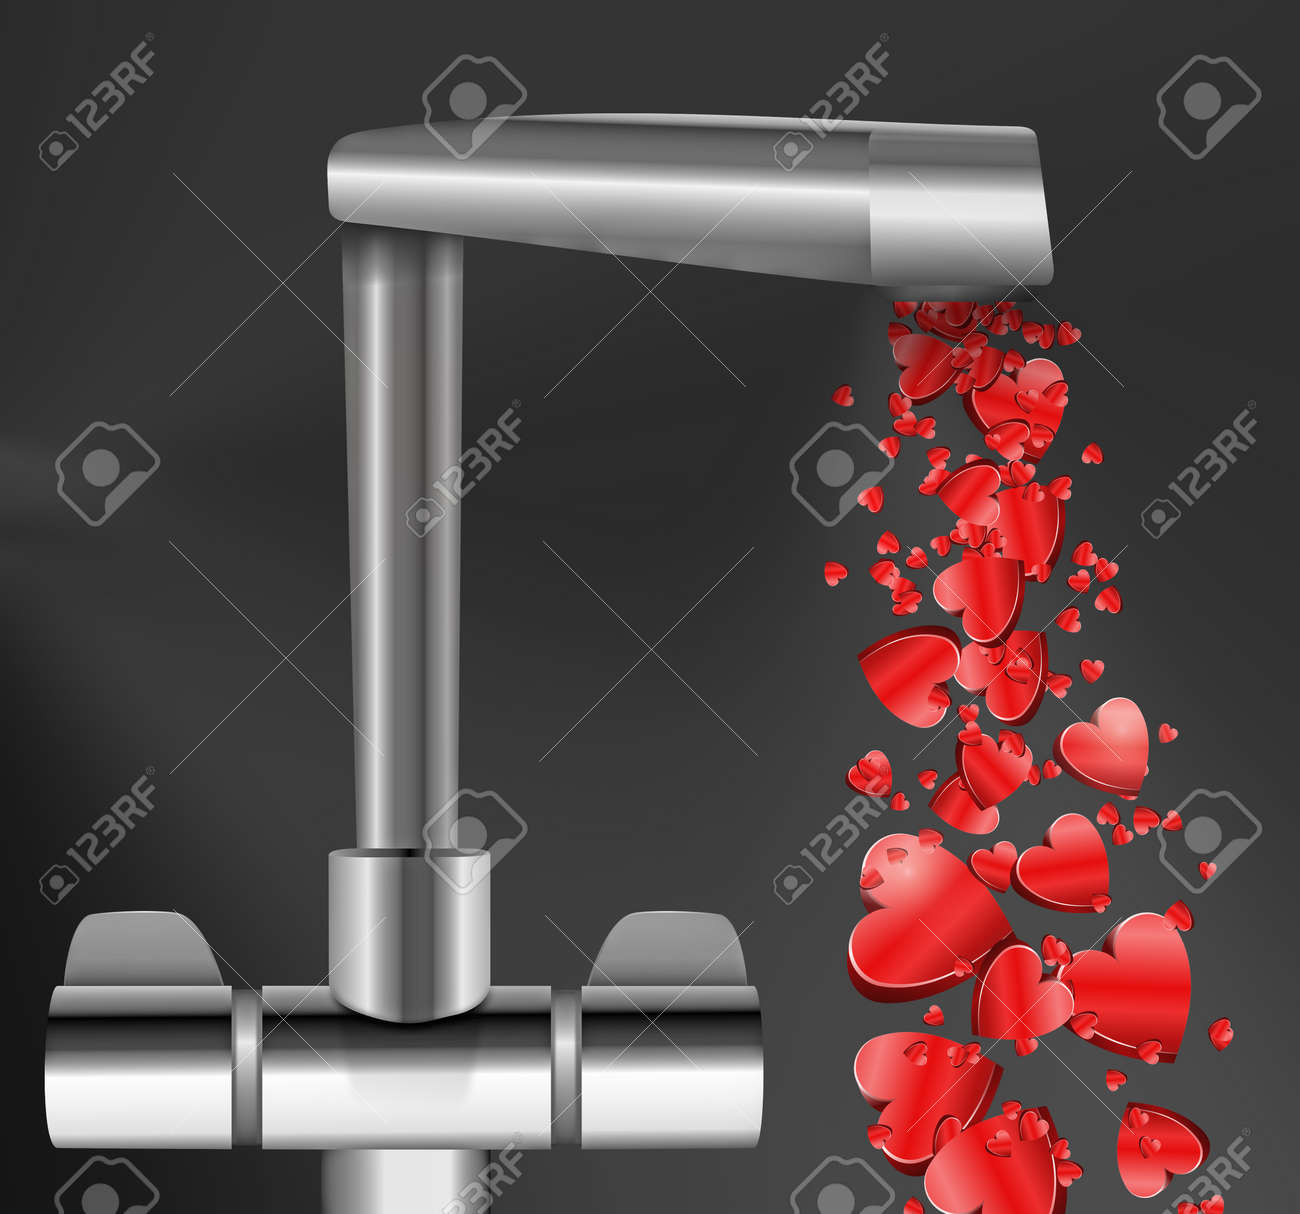 Illustration depicting a chrome water tap with metallic red love hearts flowing from the spout against a dark  background. Stock Photo - 12207923